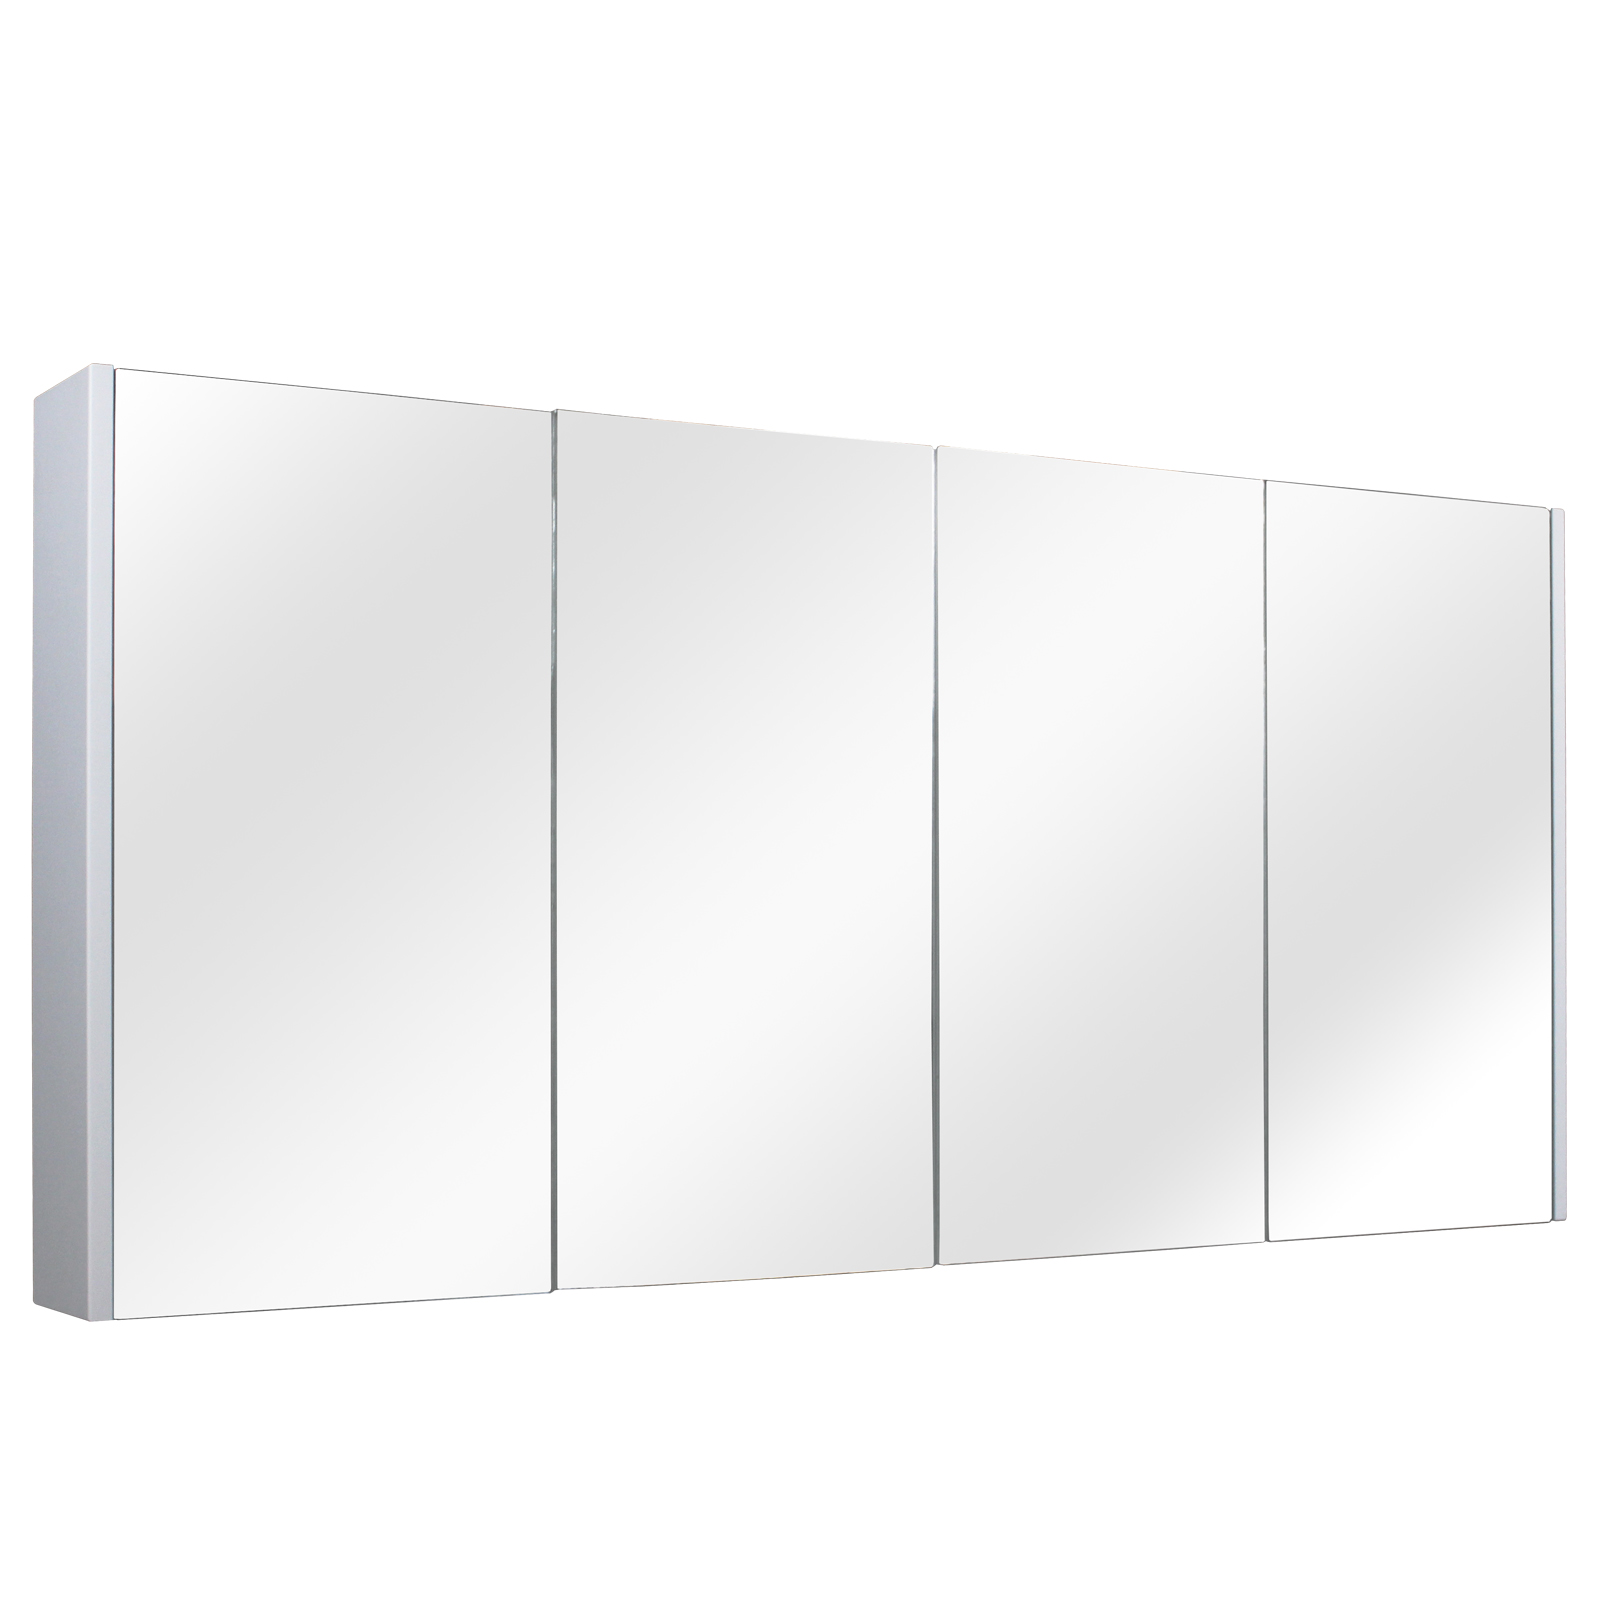 Paris 1500 Shaving Cabinet - Matte White